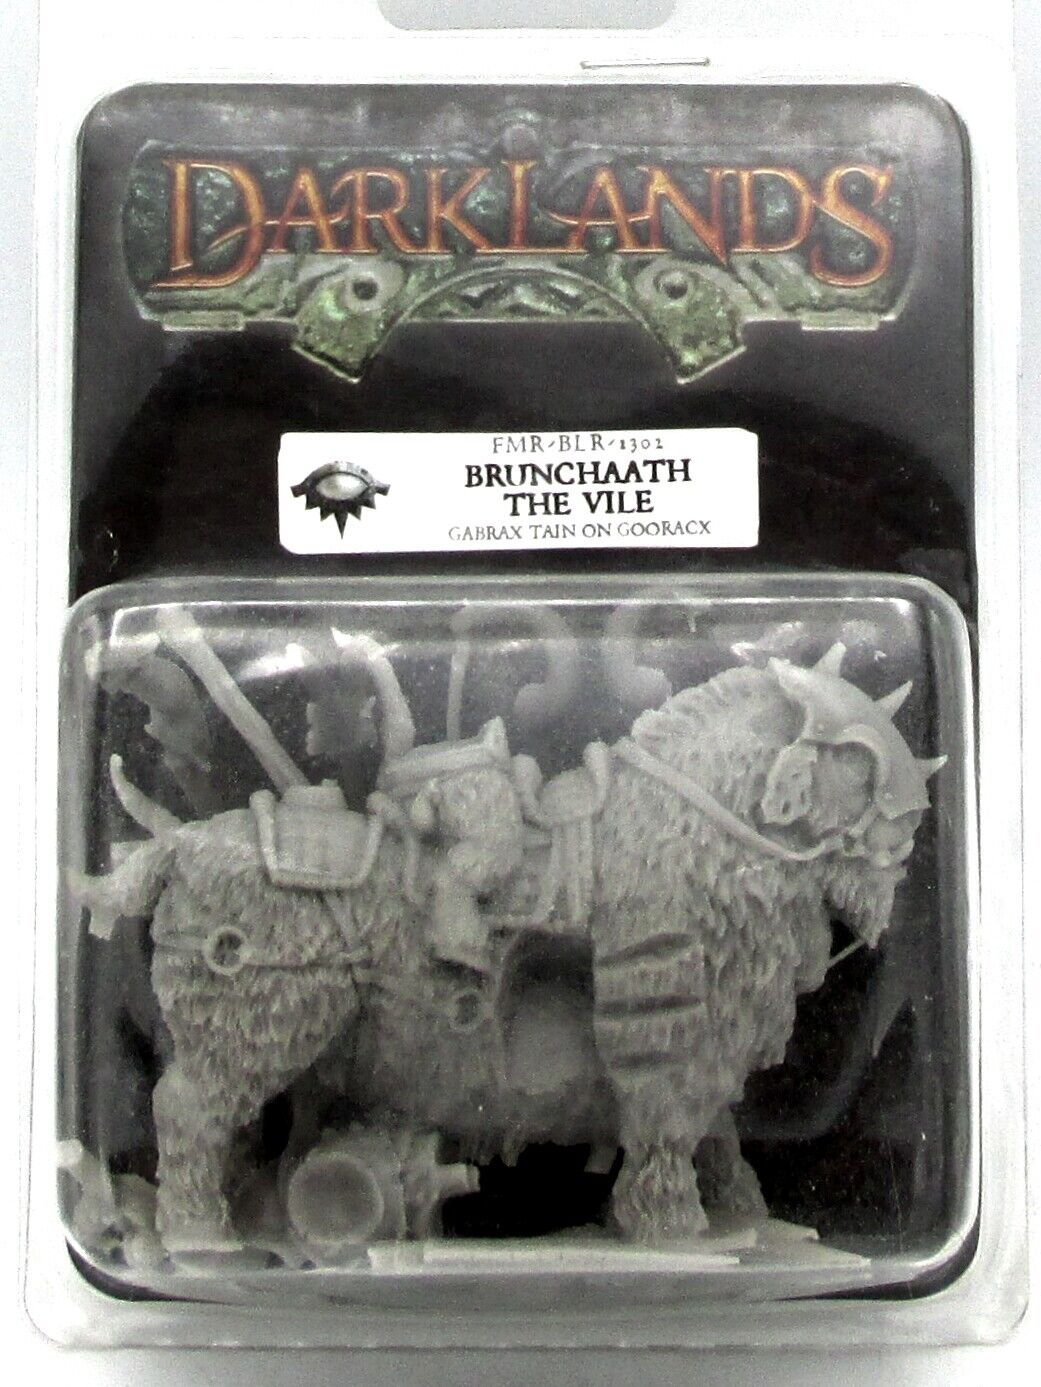 Darklands FMR-BLR-1302 Brunchaath The Vile (Gabrax Tain on Gooracx) Beastman